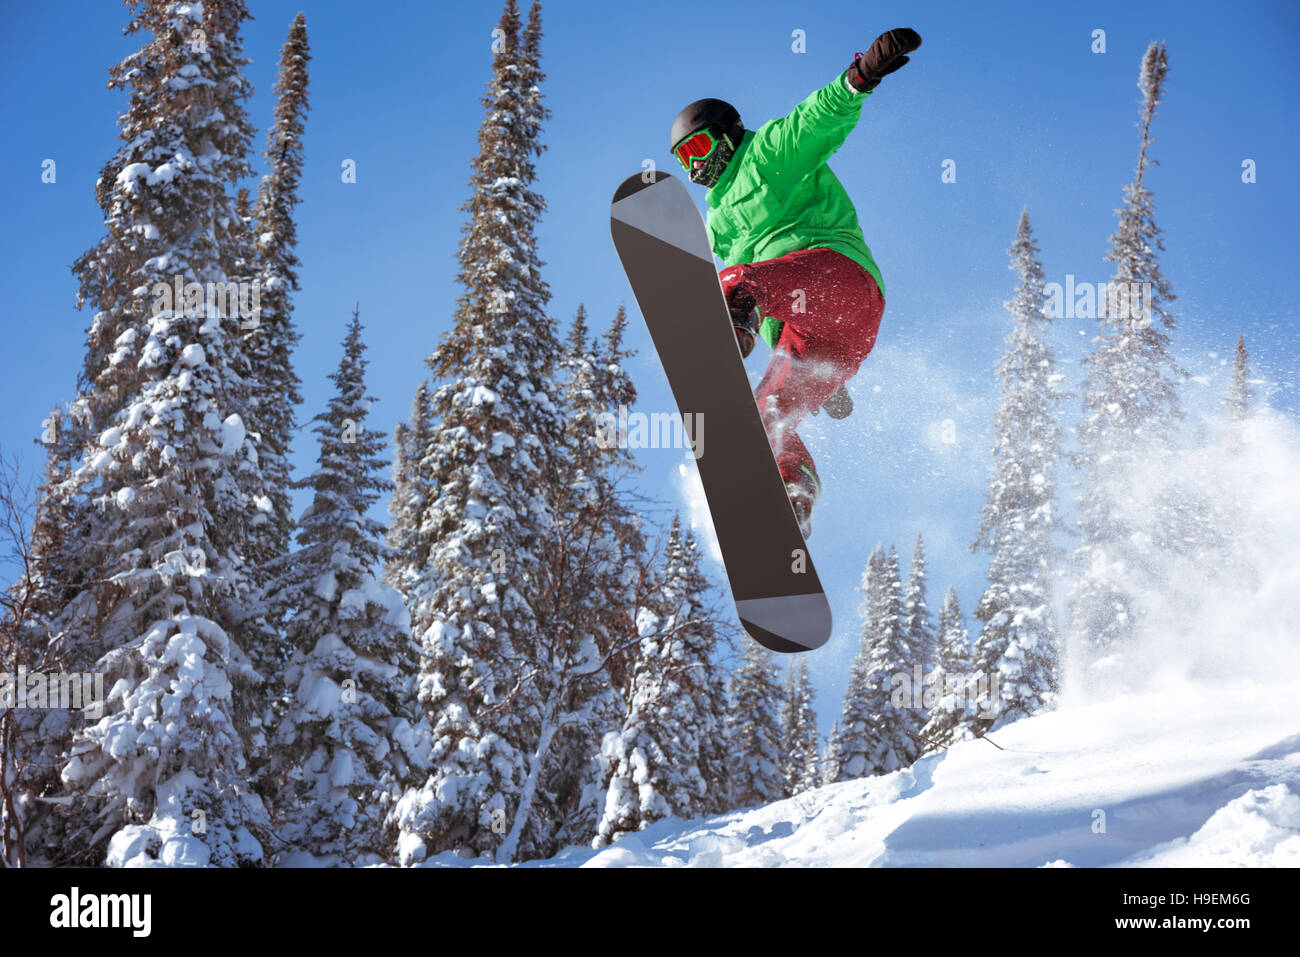 Snowboarder jumps freeride powder forest - Stock Image